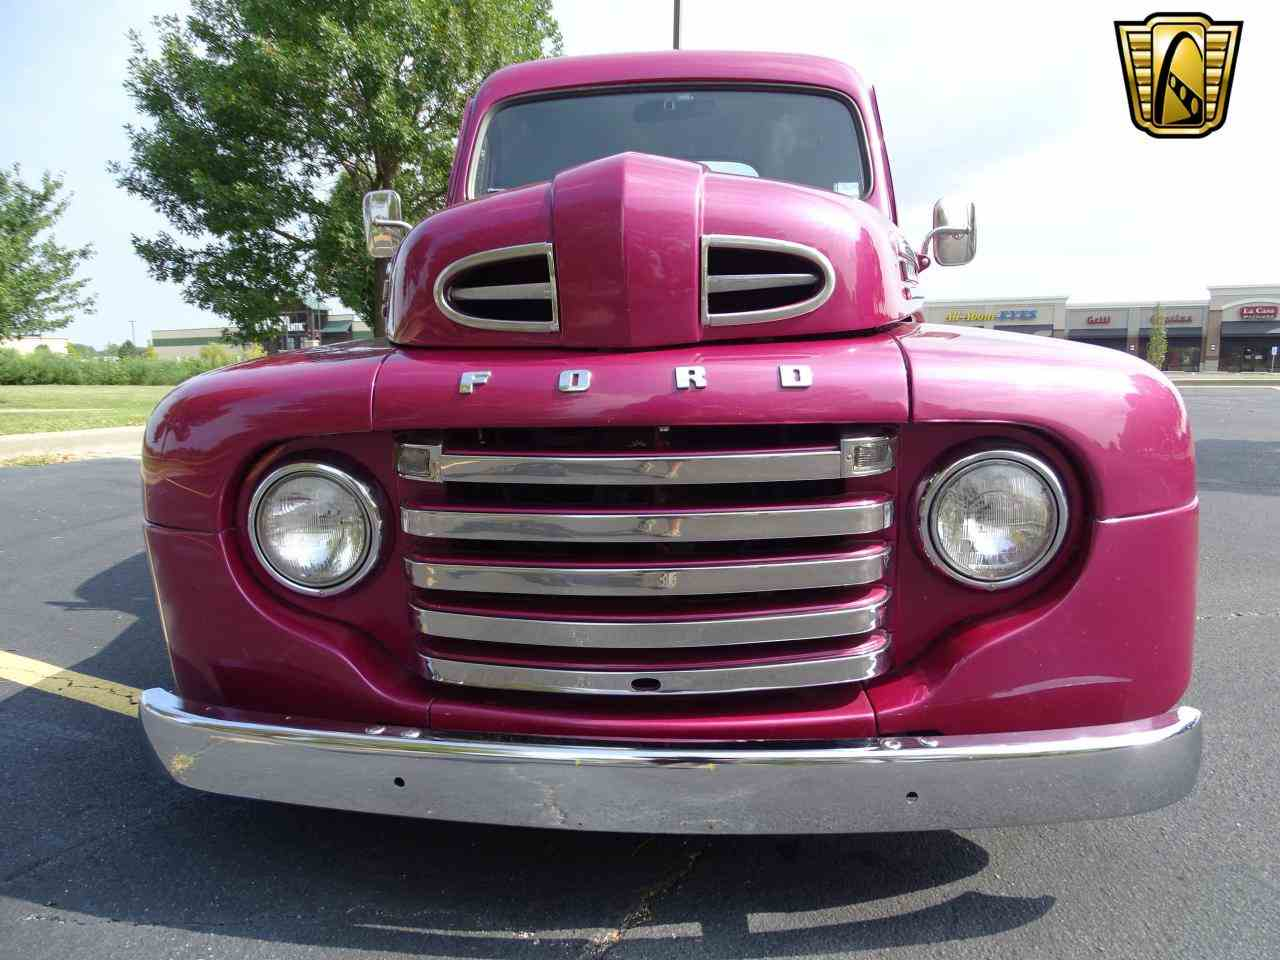 Large Picture of '50 Ford Pickup located in Illinois - $23,995.00 Offered by Gateway Classic Cars - St. Louis - LVNS